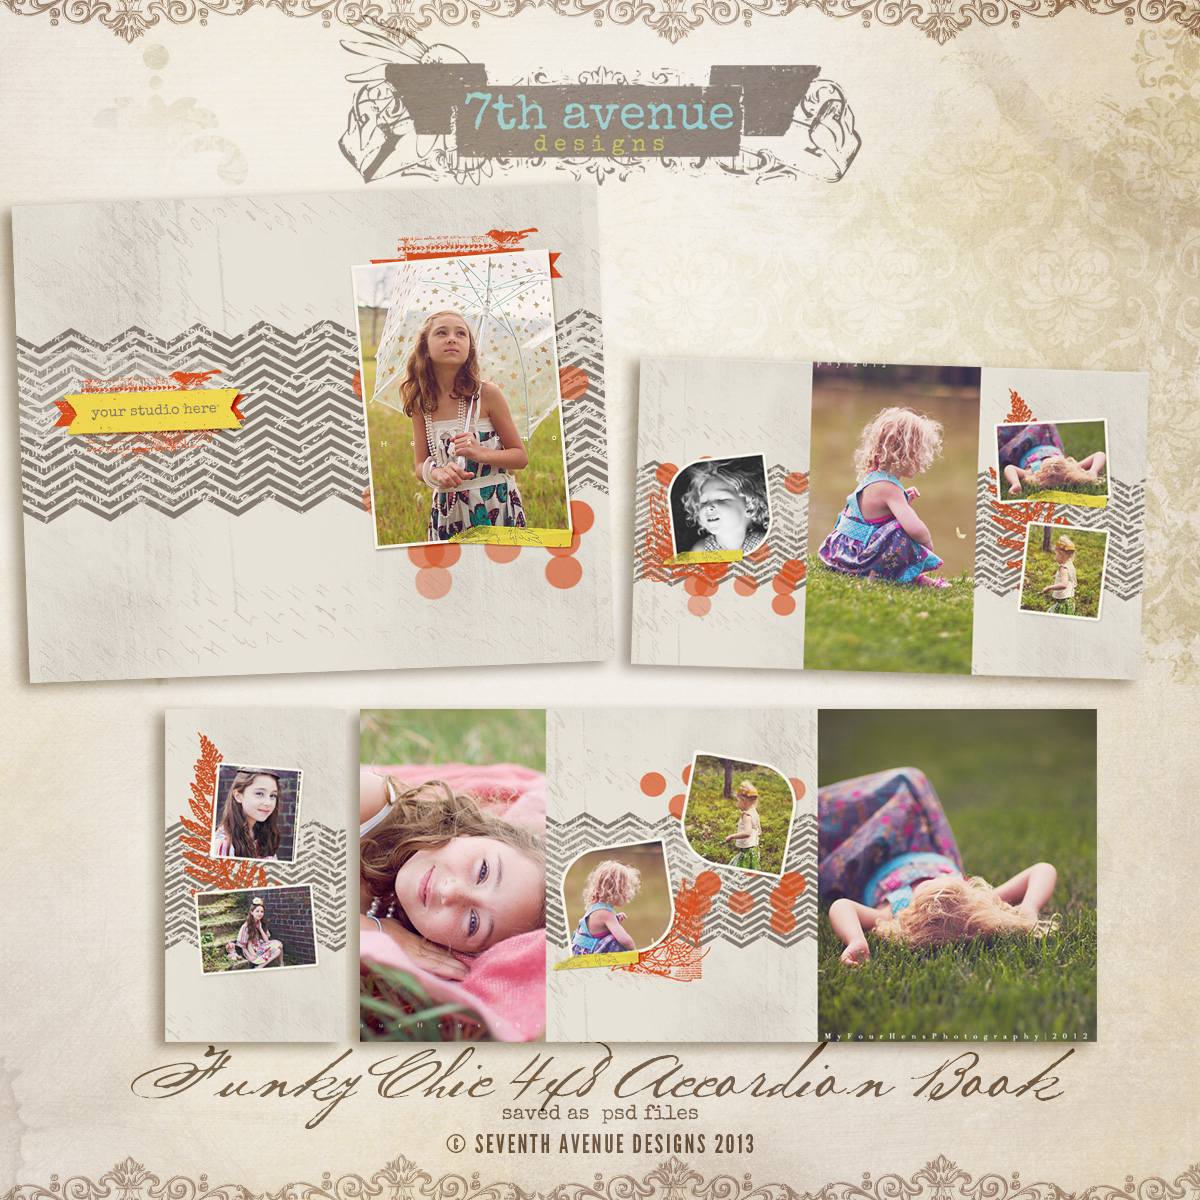 Funky Chic 4x8 Accordion book templates